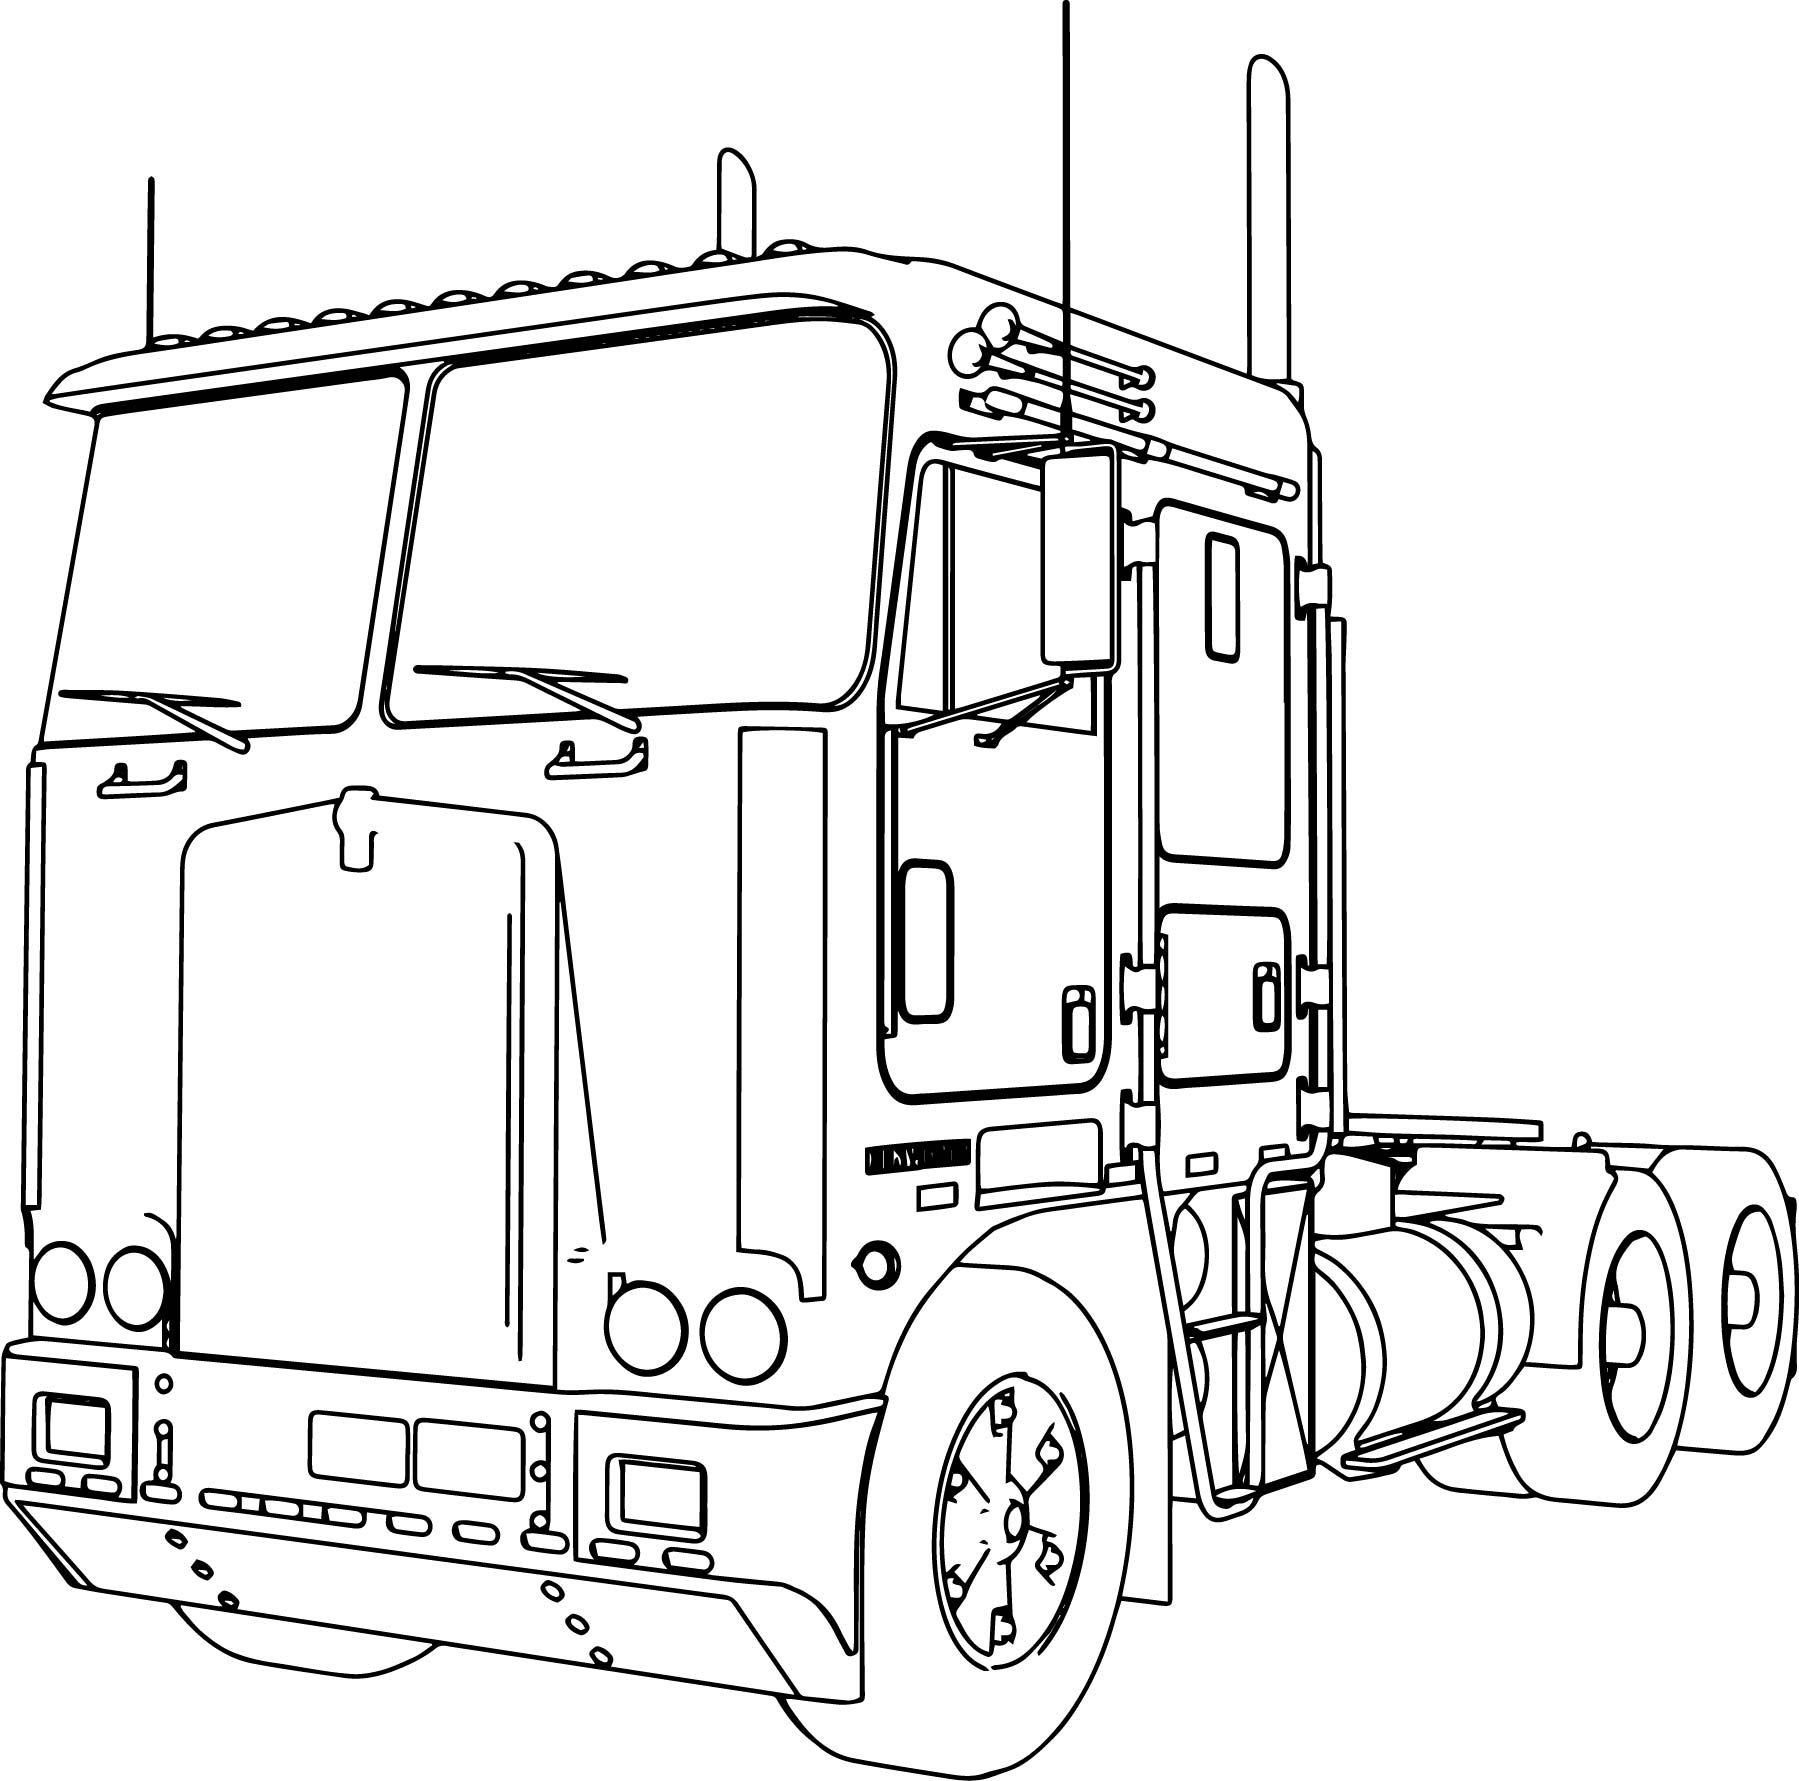 cool truck coloring pages cool transportation monster truck coloring page for kids truck coloring pages cool